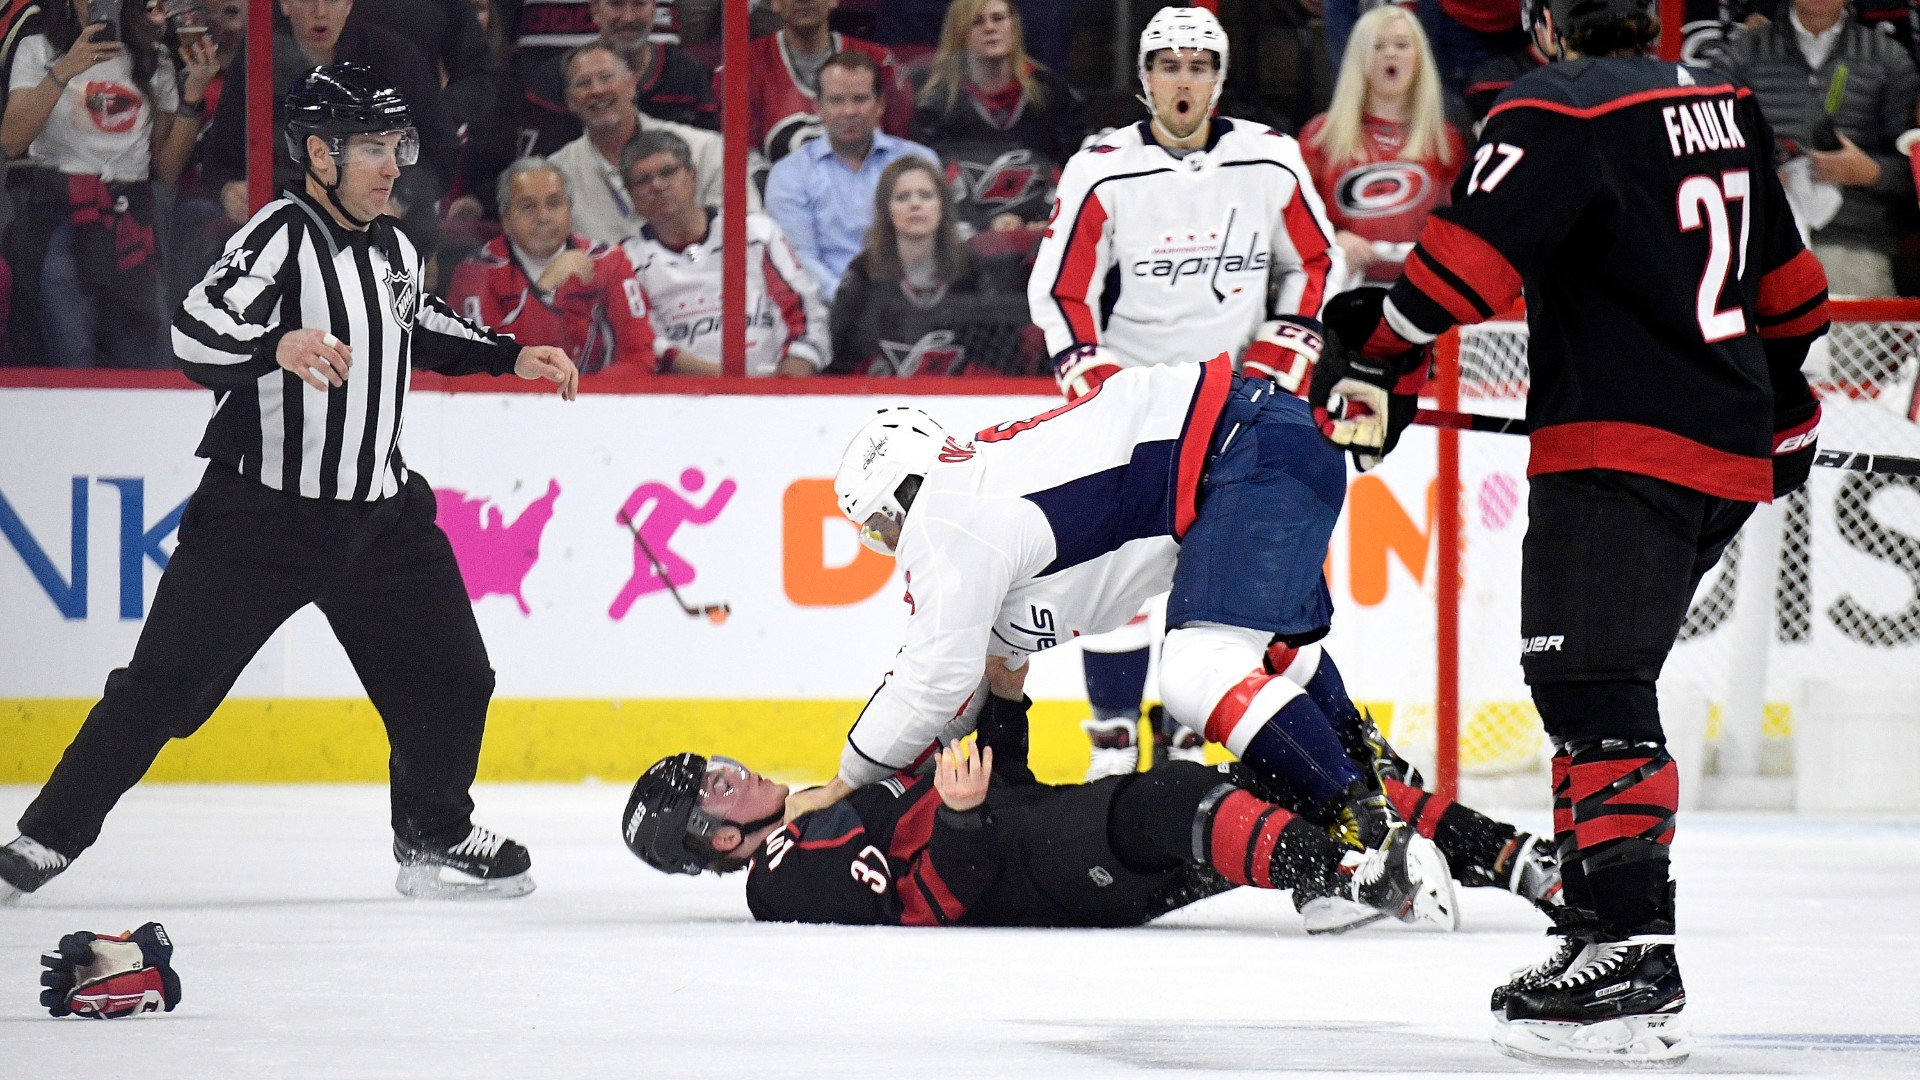 Nhl Playoffs 2019 Alex Ovechkin Canes React To Andrei Svechnikov Fight I Hope Hes Okay